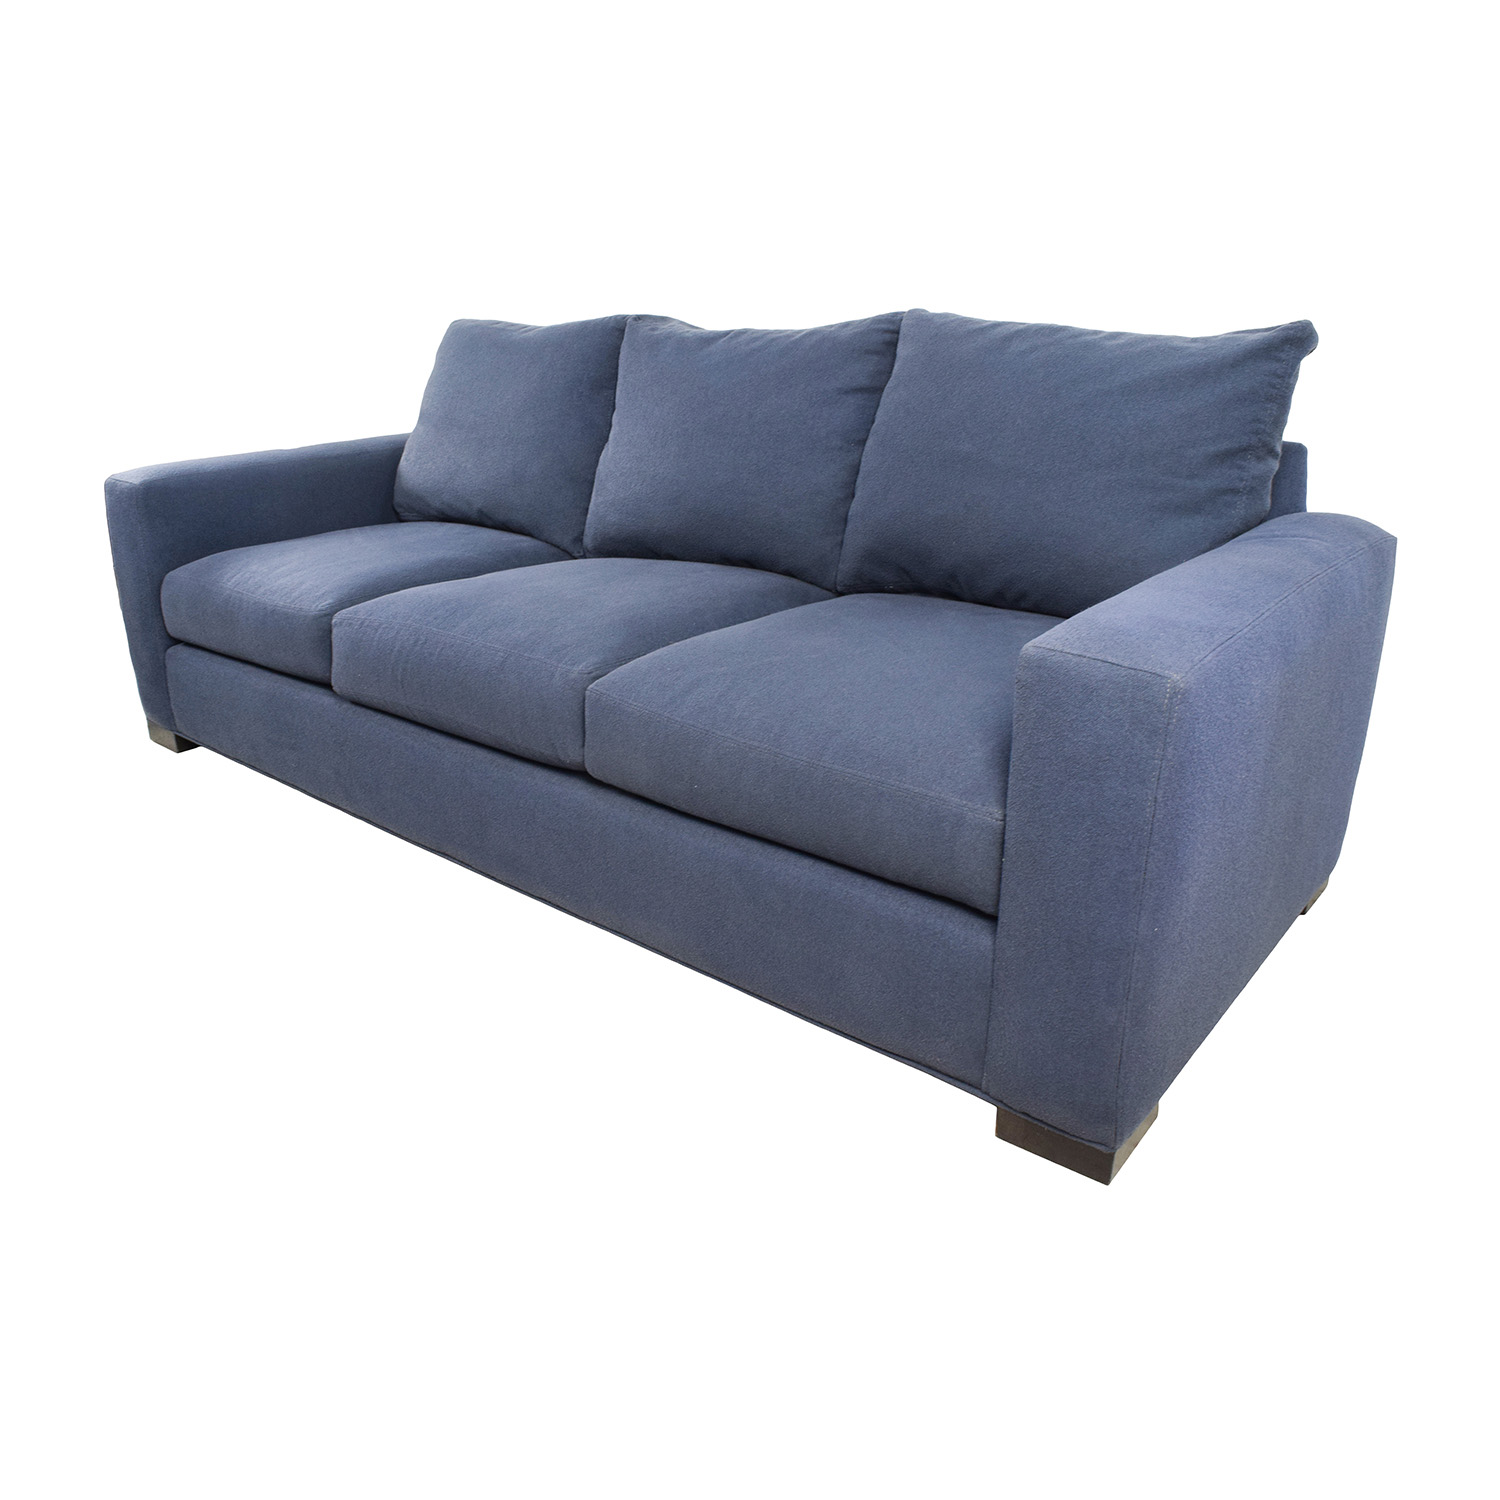 54 Off Room And Board Room Board Metro Blue Sofa Sofas